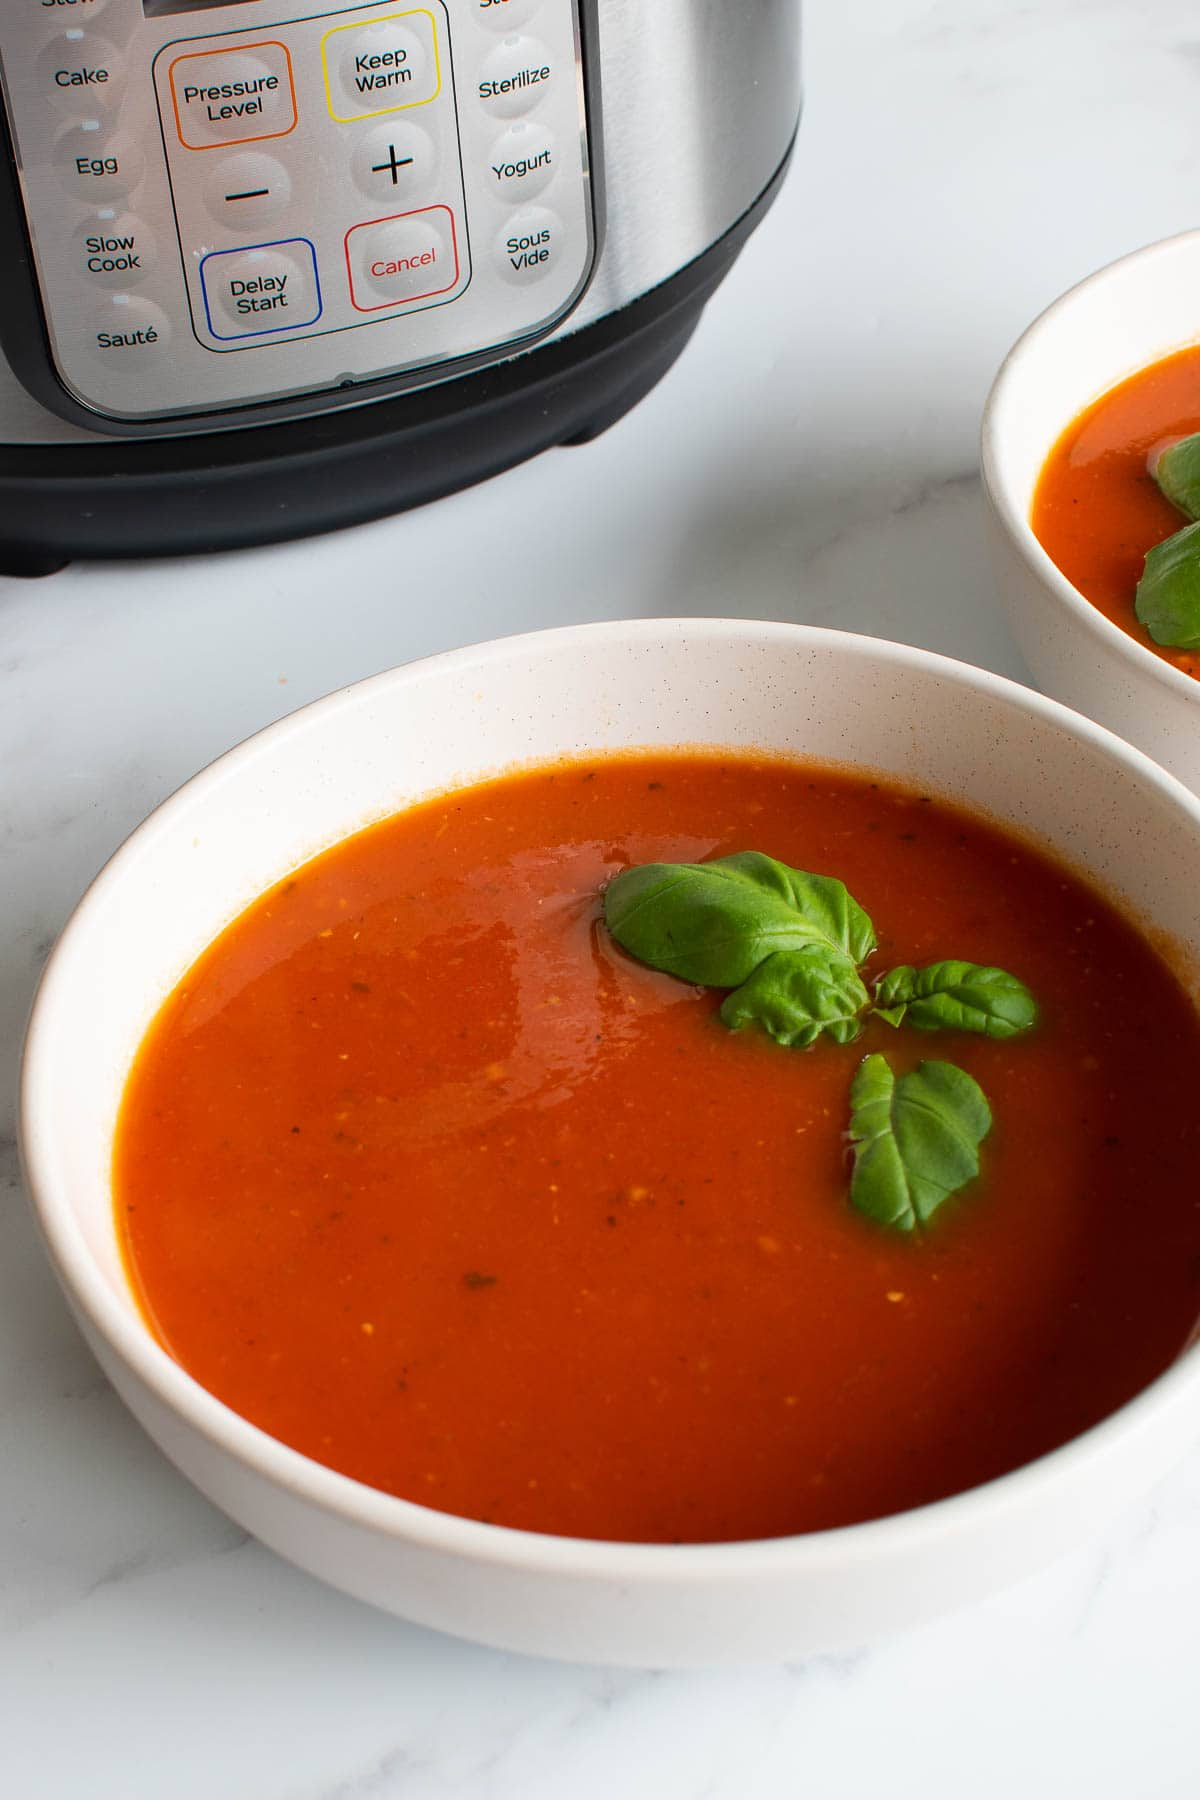 A bowl of tomato soup in front of an Instant Pot.